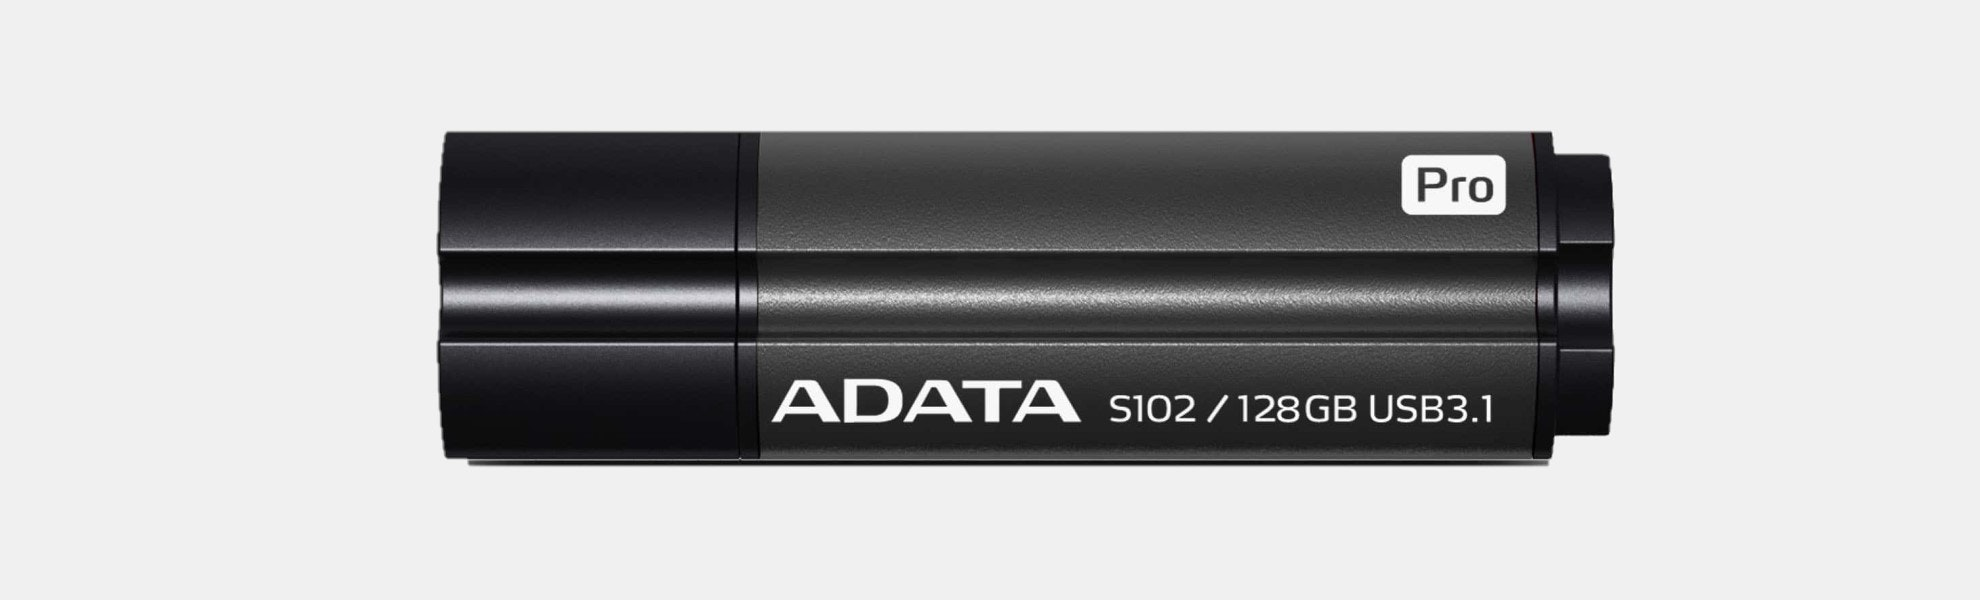 Adata S102Pro 128GB USB 3.1 Flash Drive